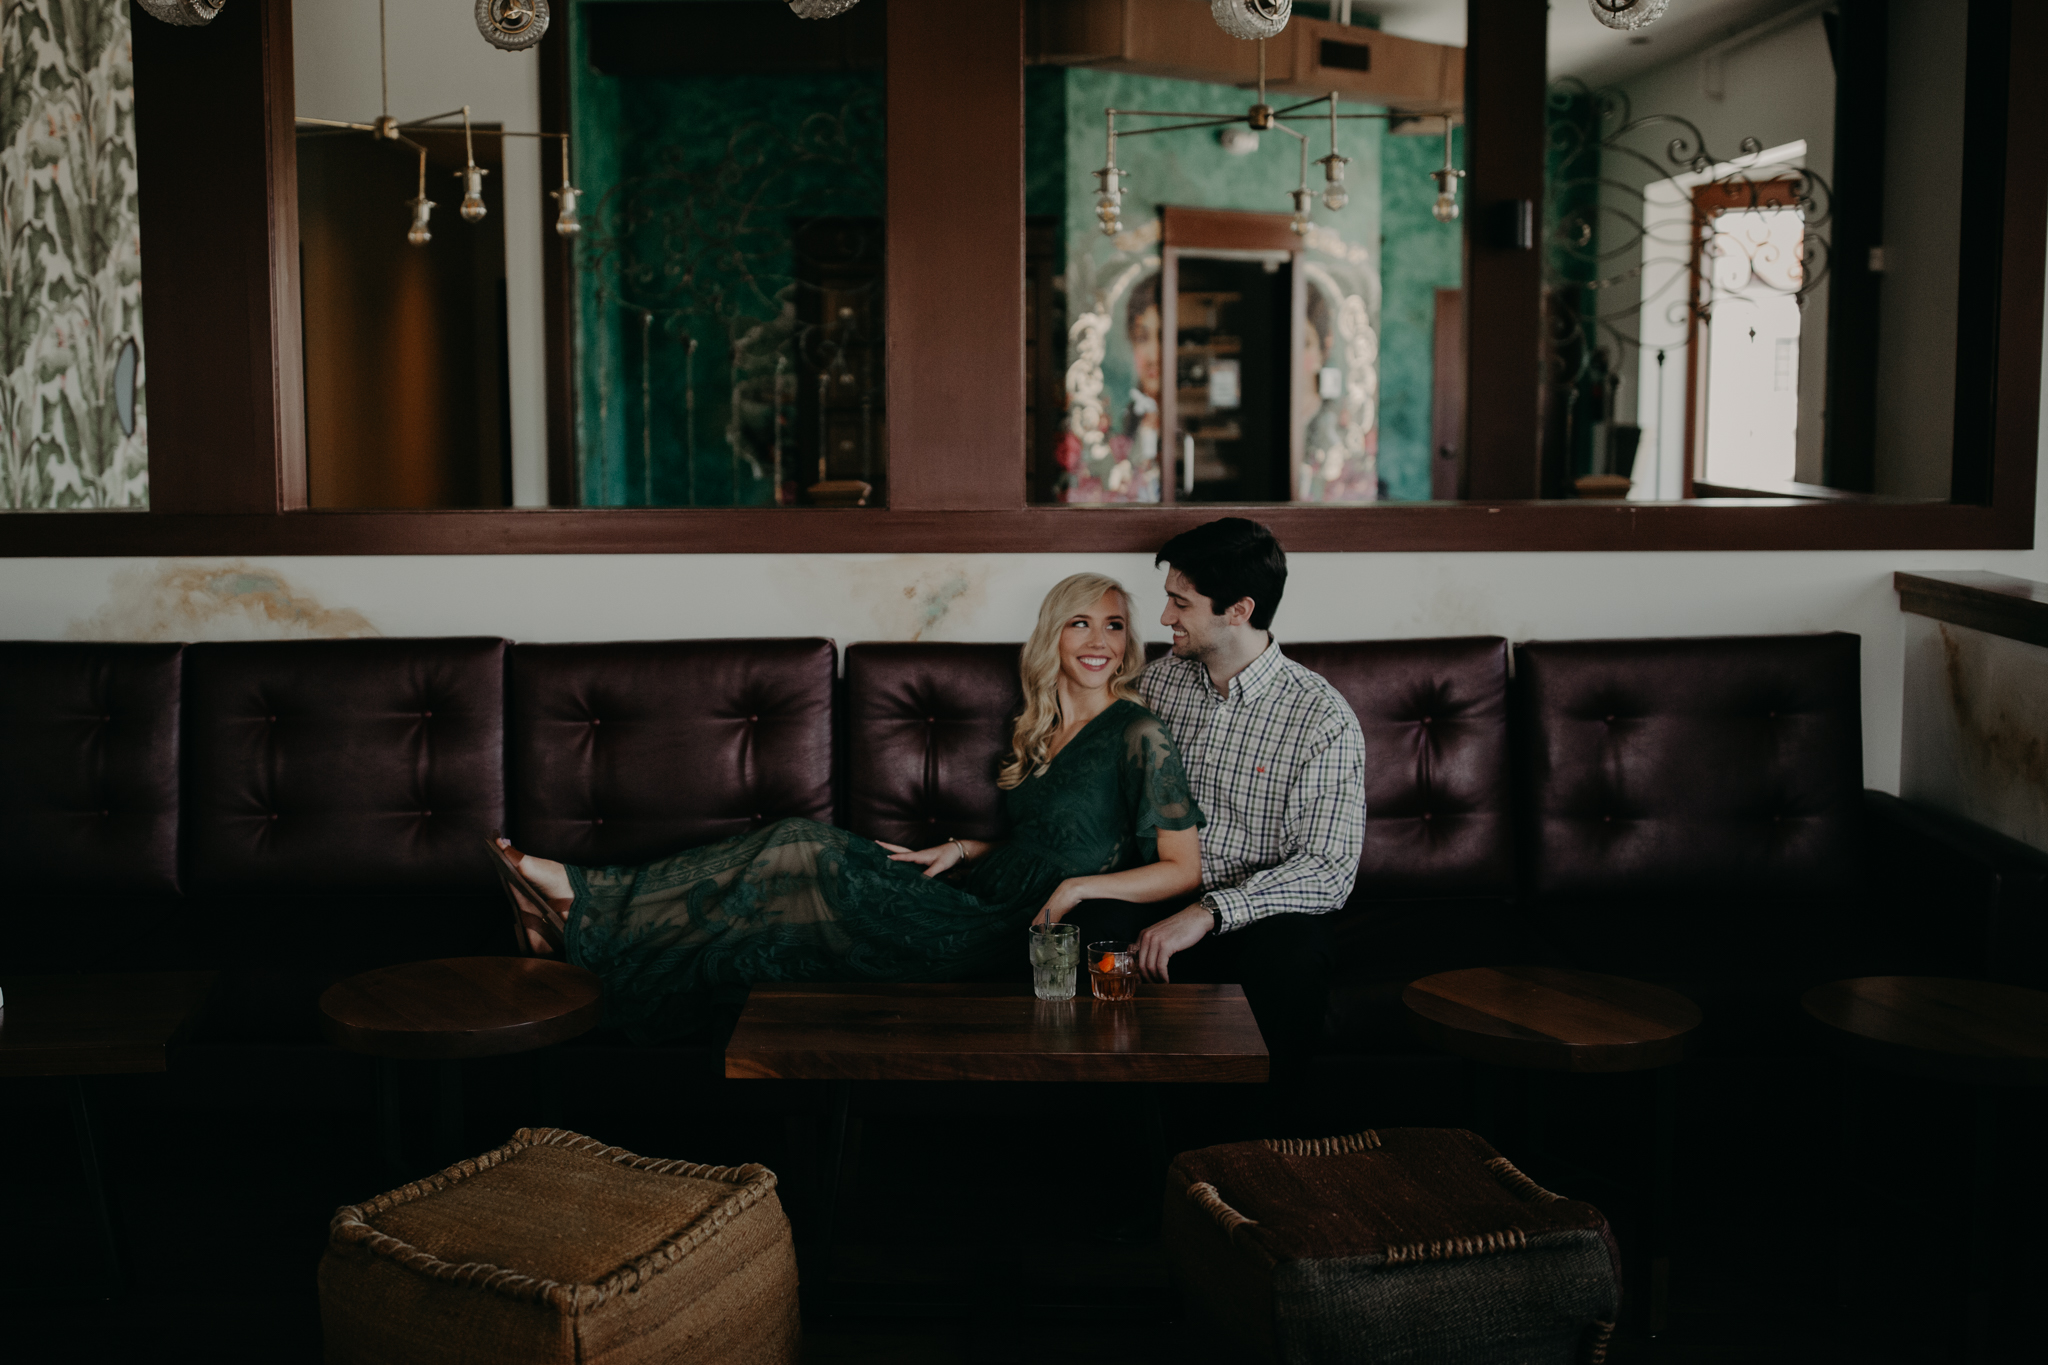 Ali-and-Jake-Chattanooga-Nashville-Tennessee-Wedding-Elopement-Photographer-93.jpg